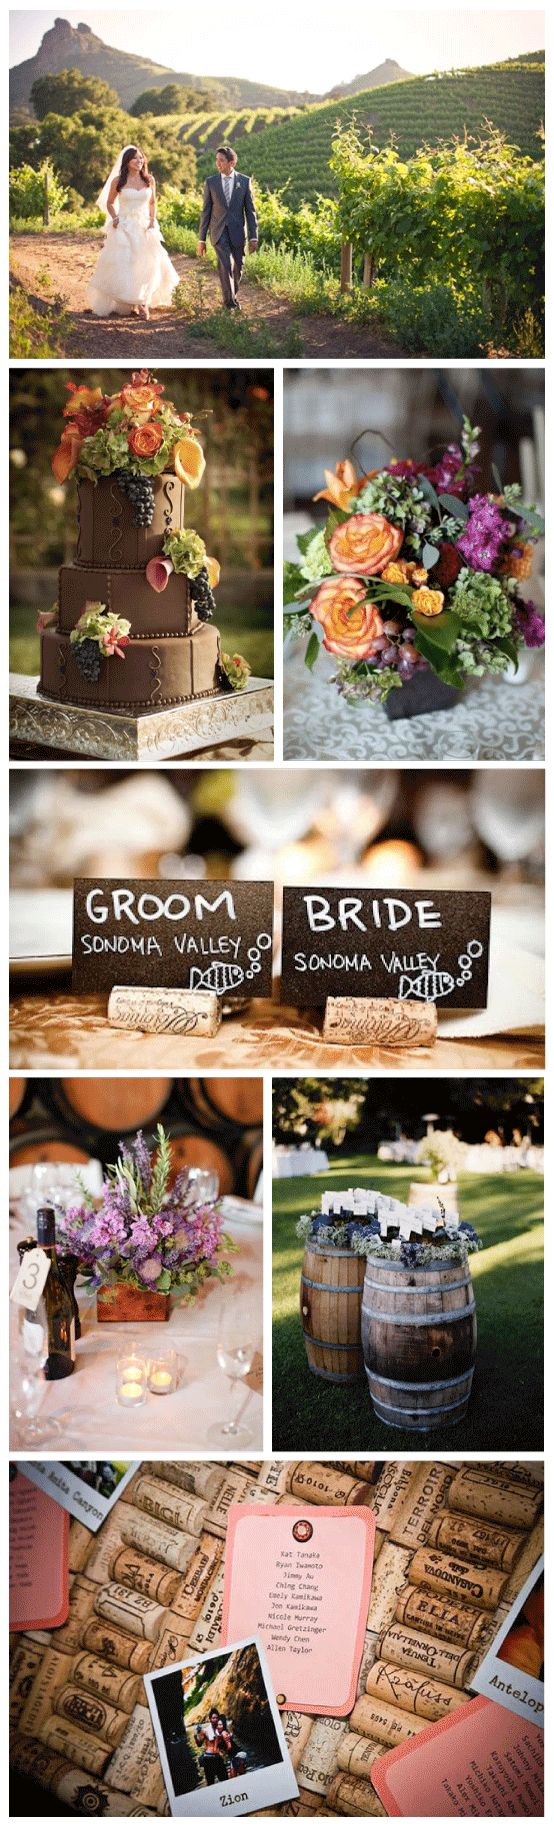 Lil this is cool use for cork as table place cars things...no idea if u already pinned sthing like this lol Vineyard Wedding Inspiration Vineyard Wedding Inspiration